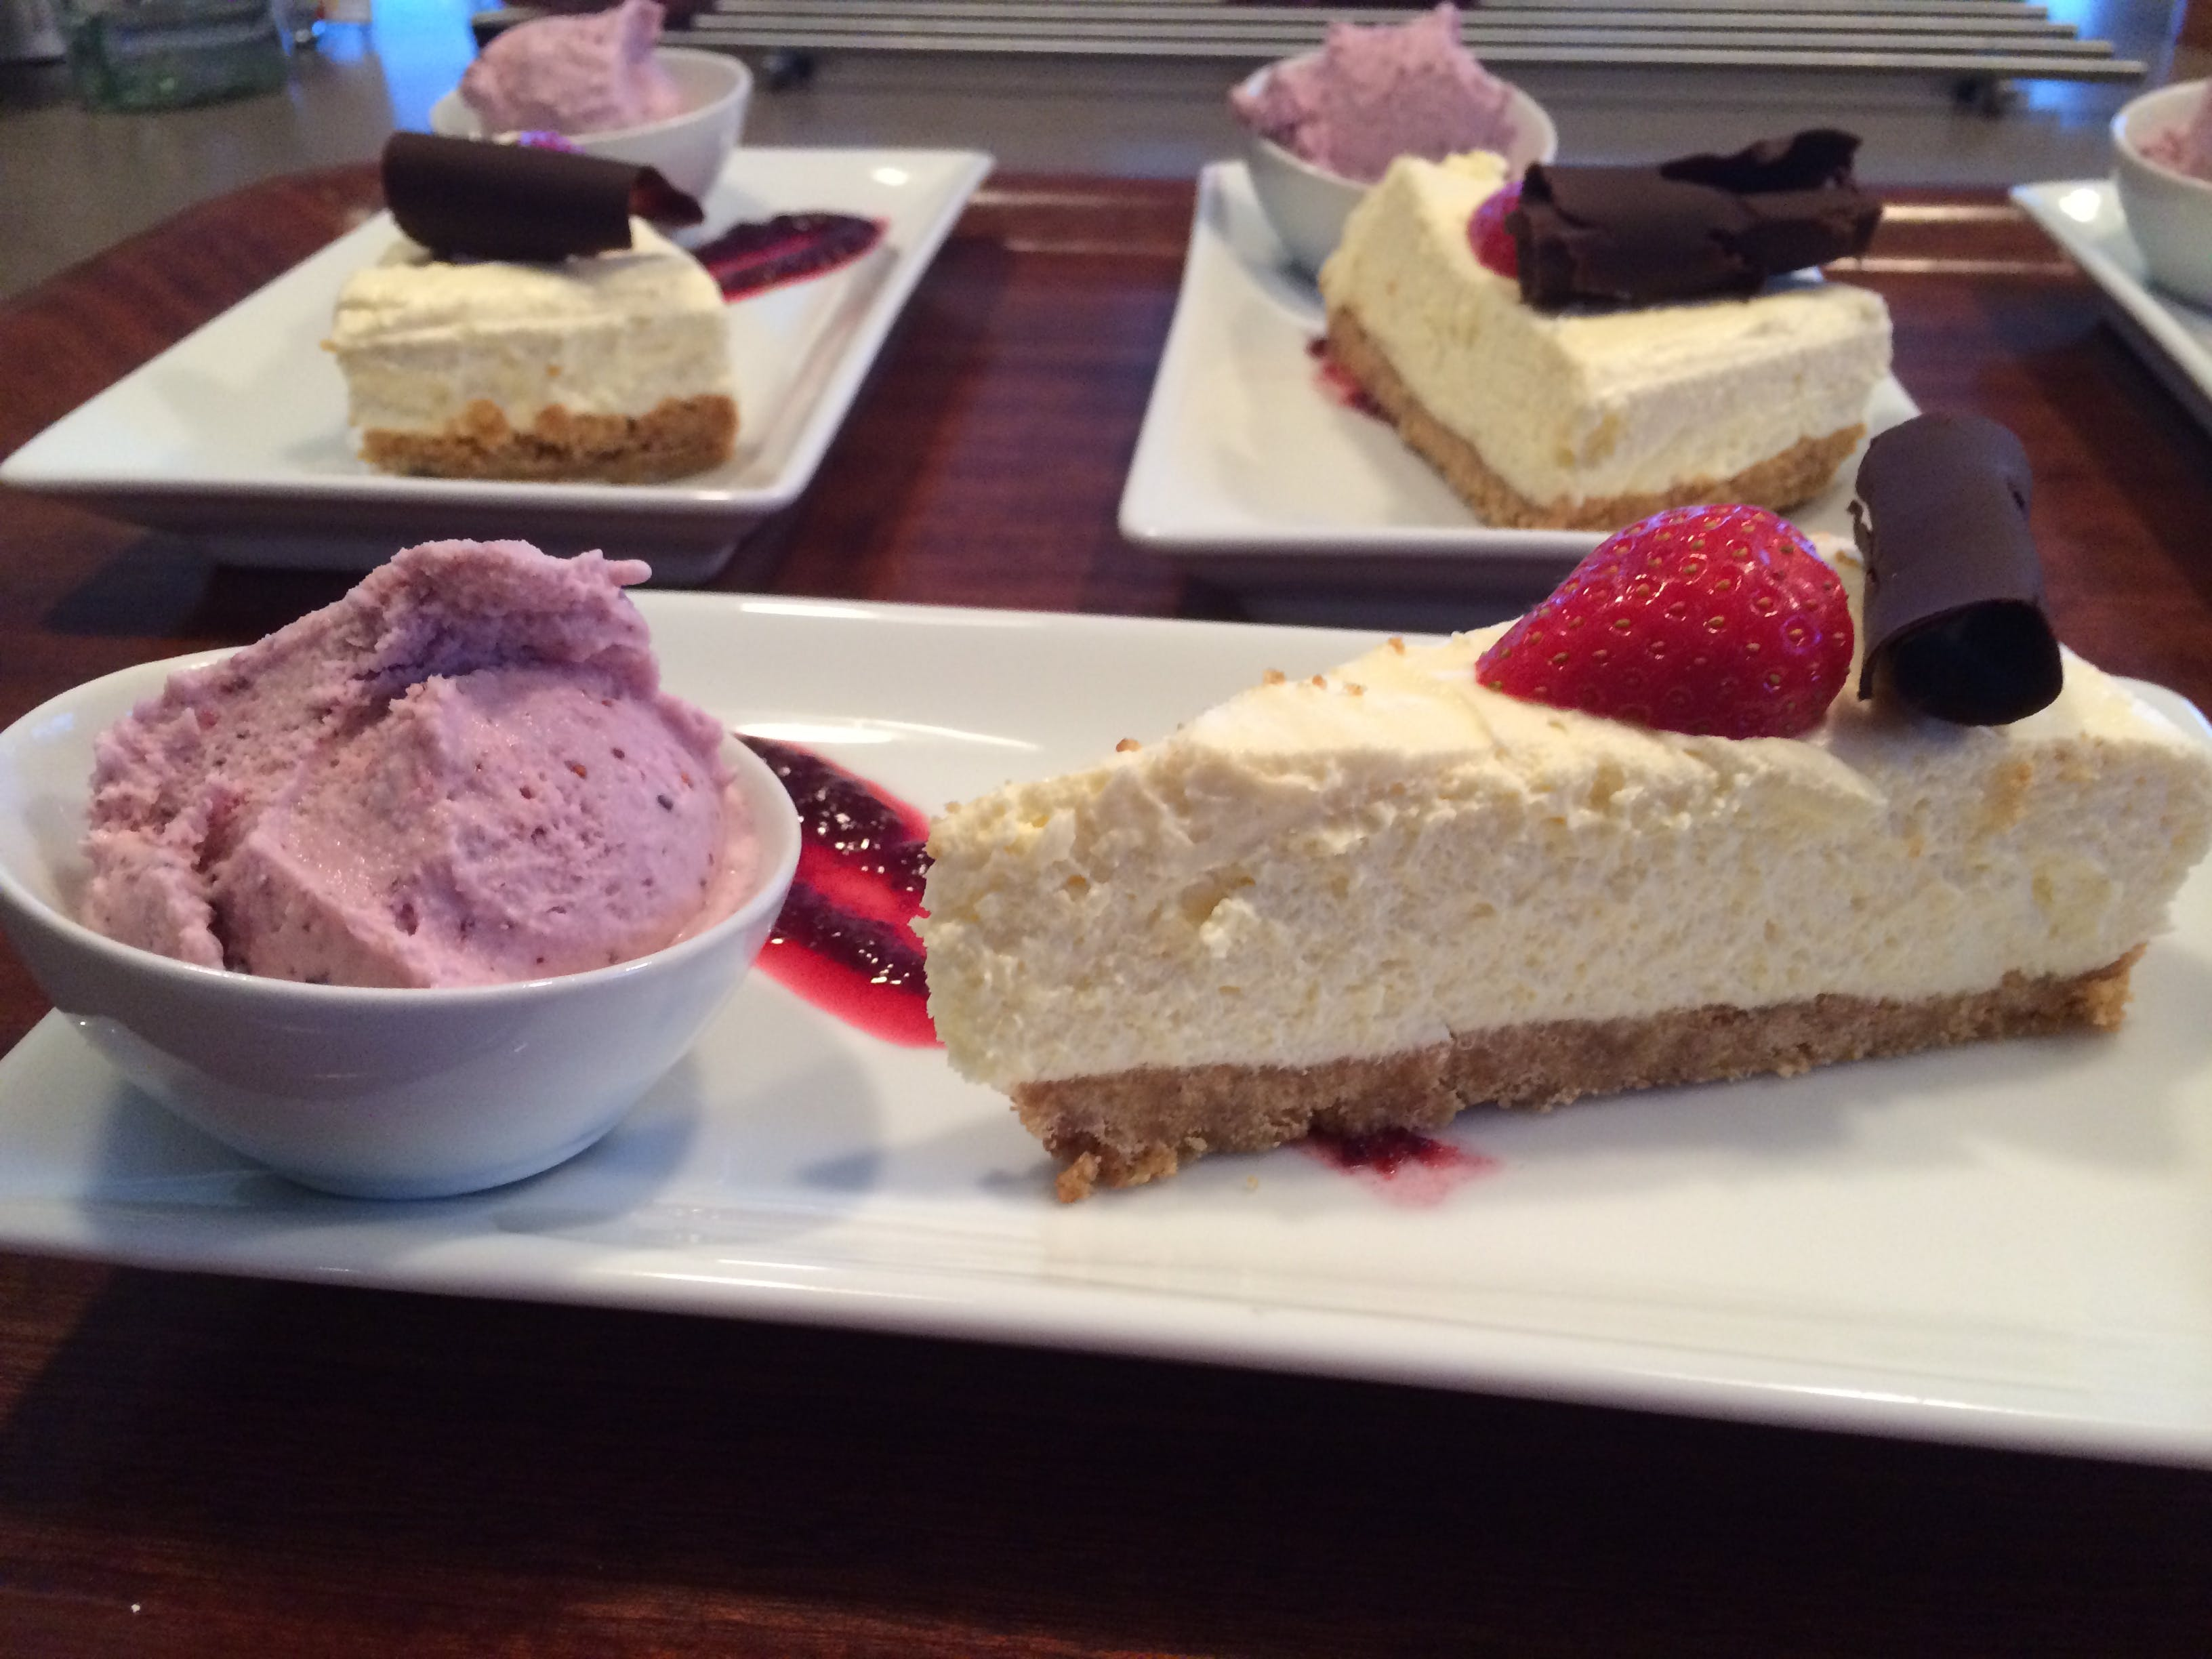 White chocolate cheesecake with homemade berry ice cream